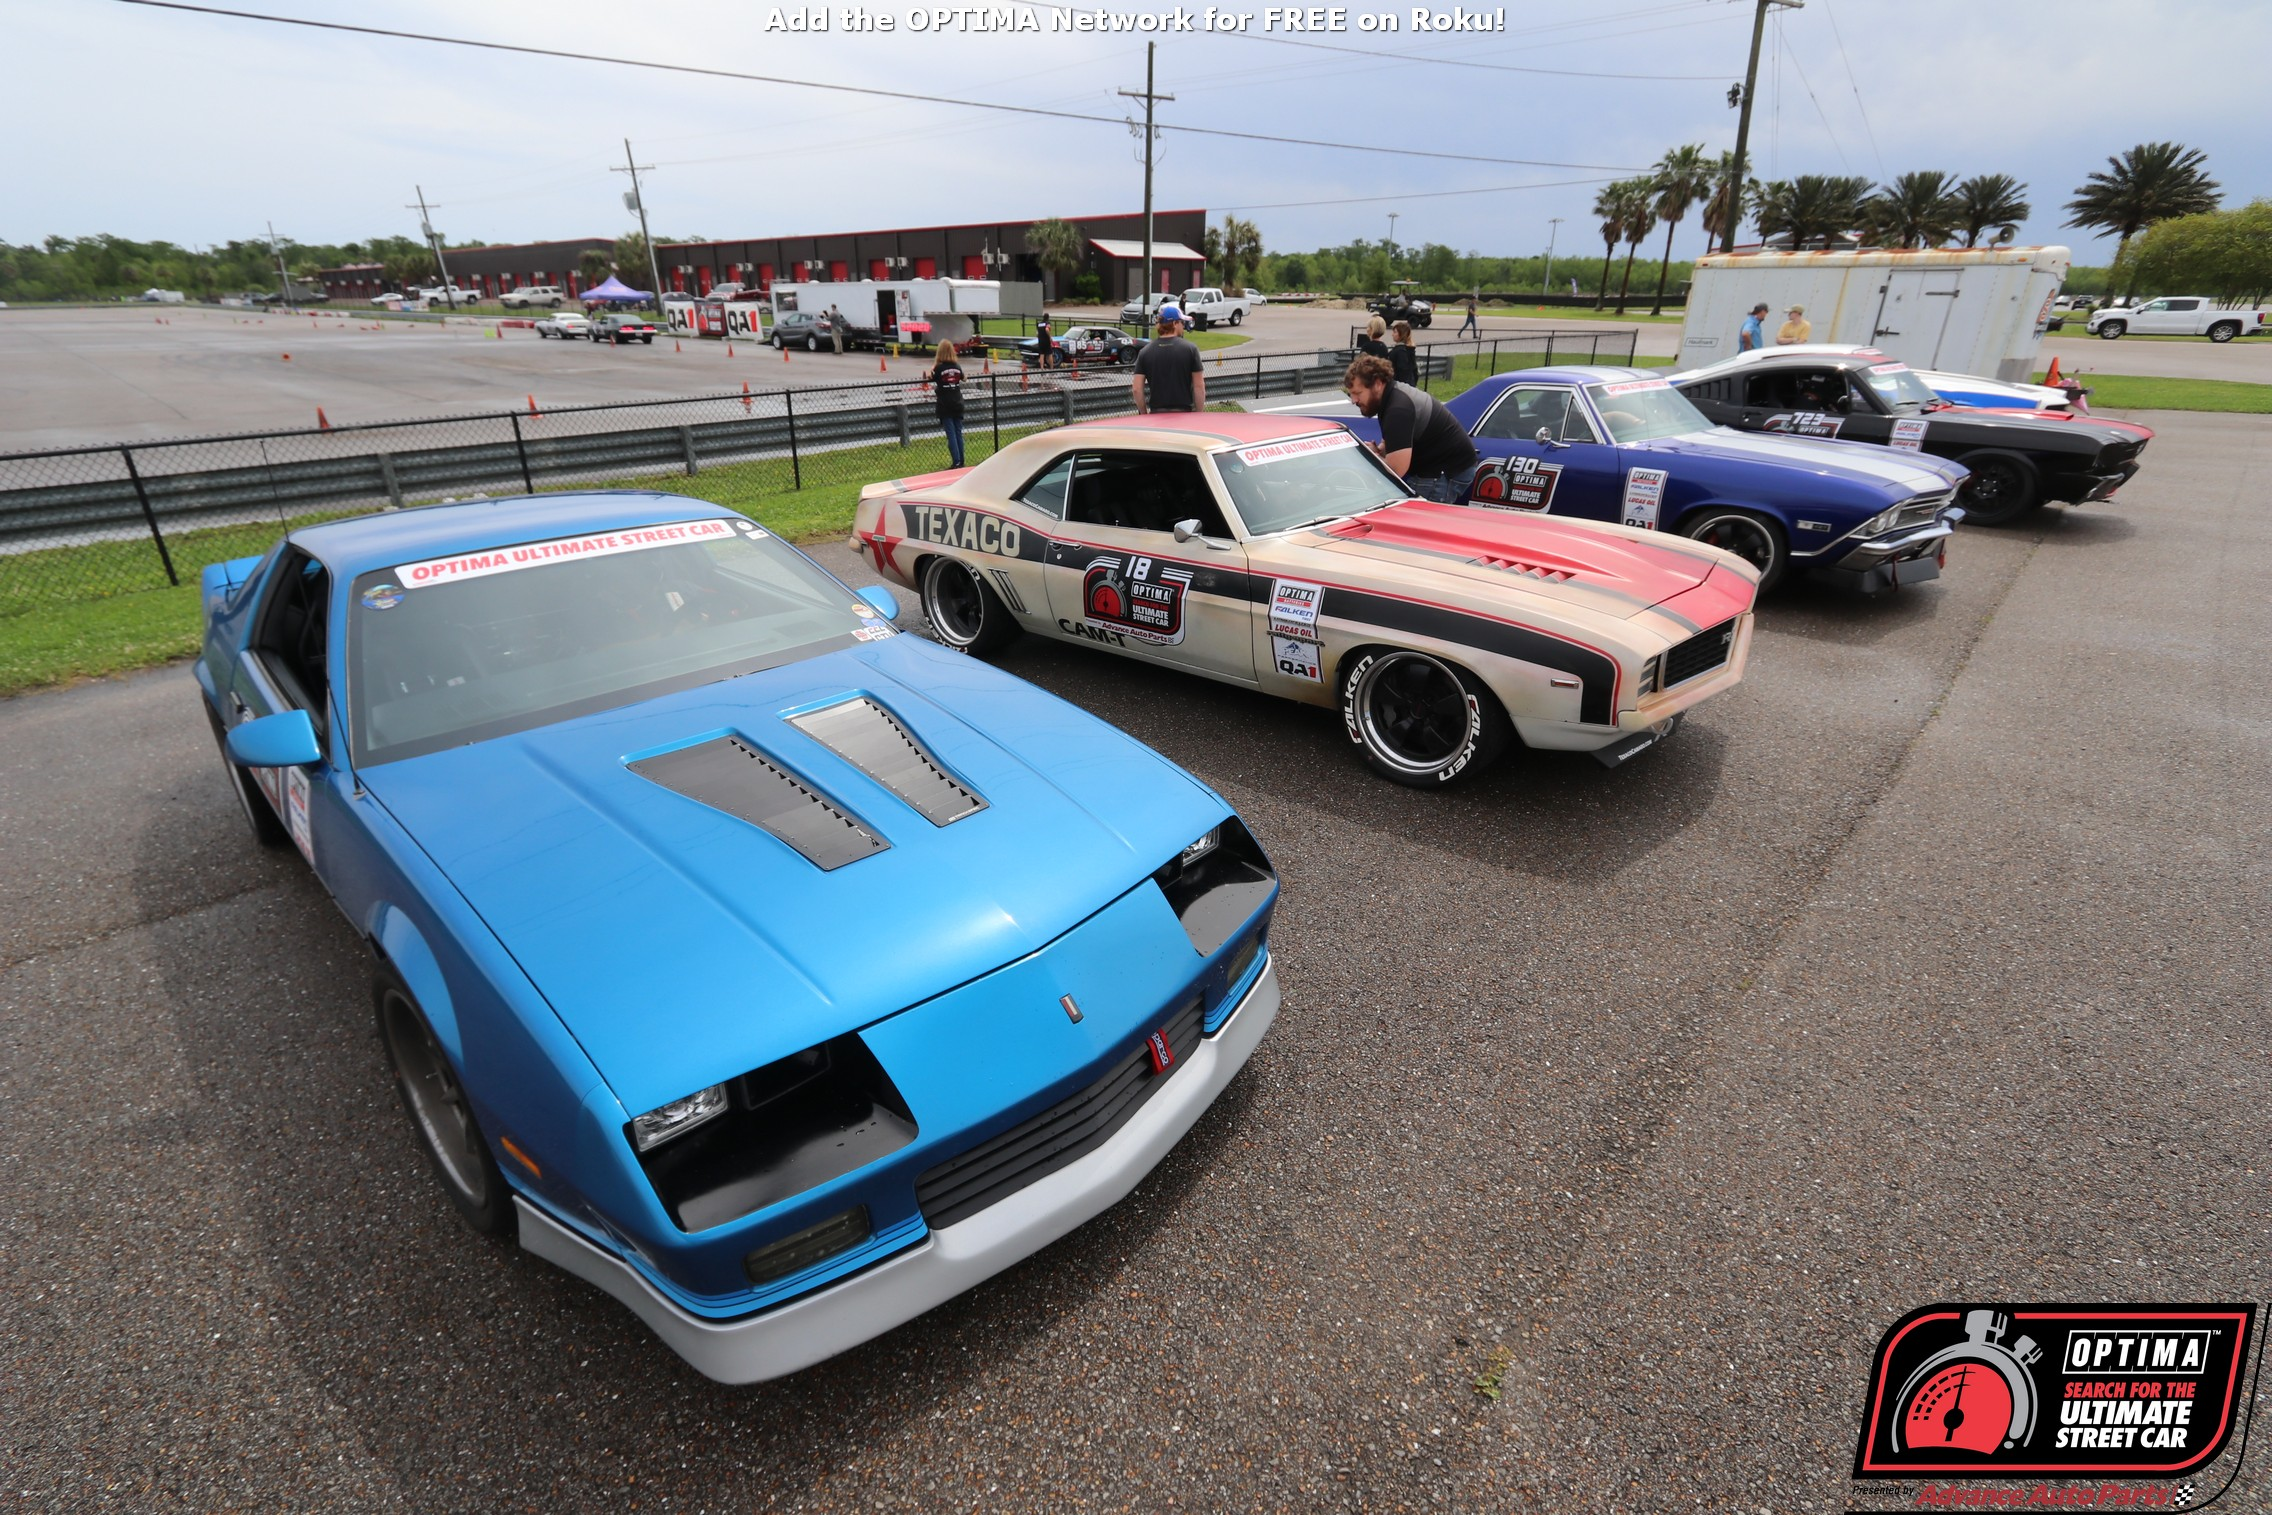 The Road To SEMA Goes Through NOLA Motorsports Park: Optima's Search For The Ultimate Street Car SEMA Quest